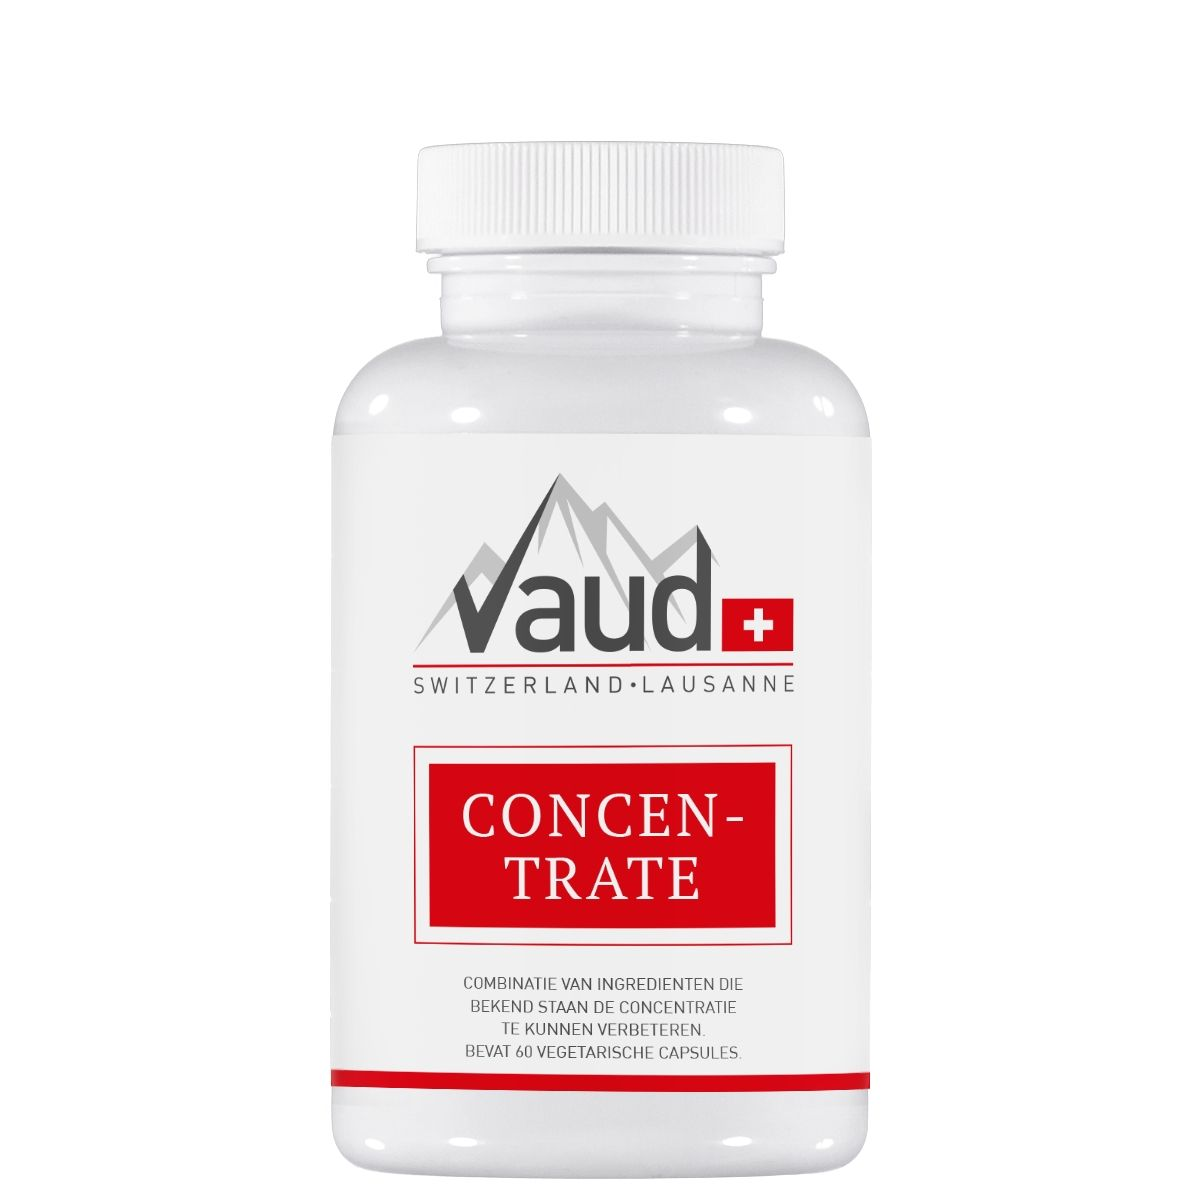 Concentrate supplement geheugen concentratie